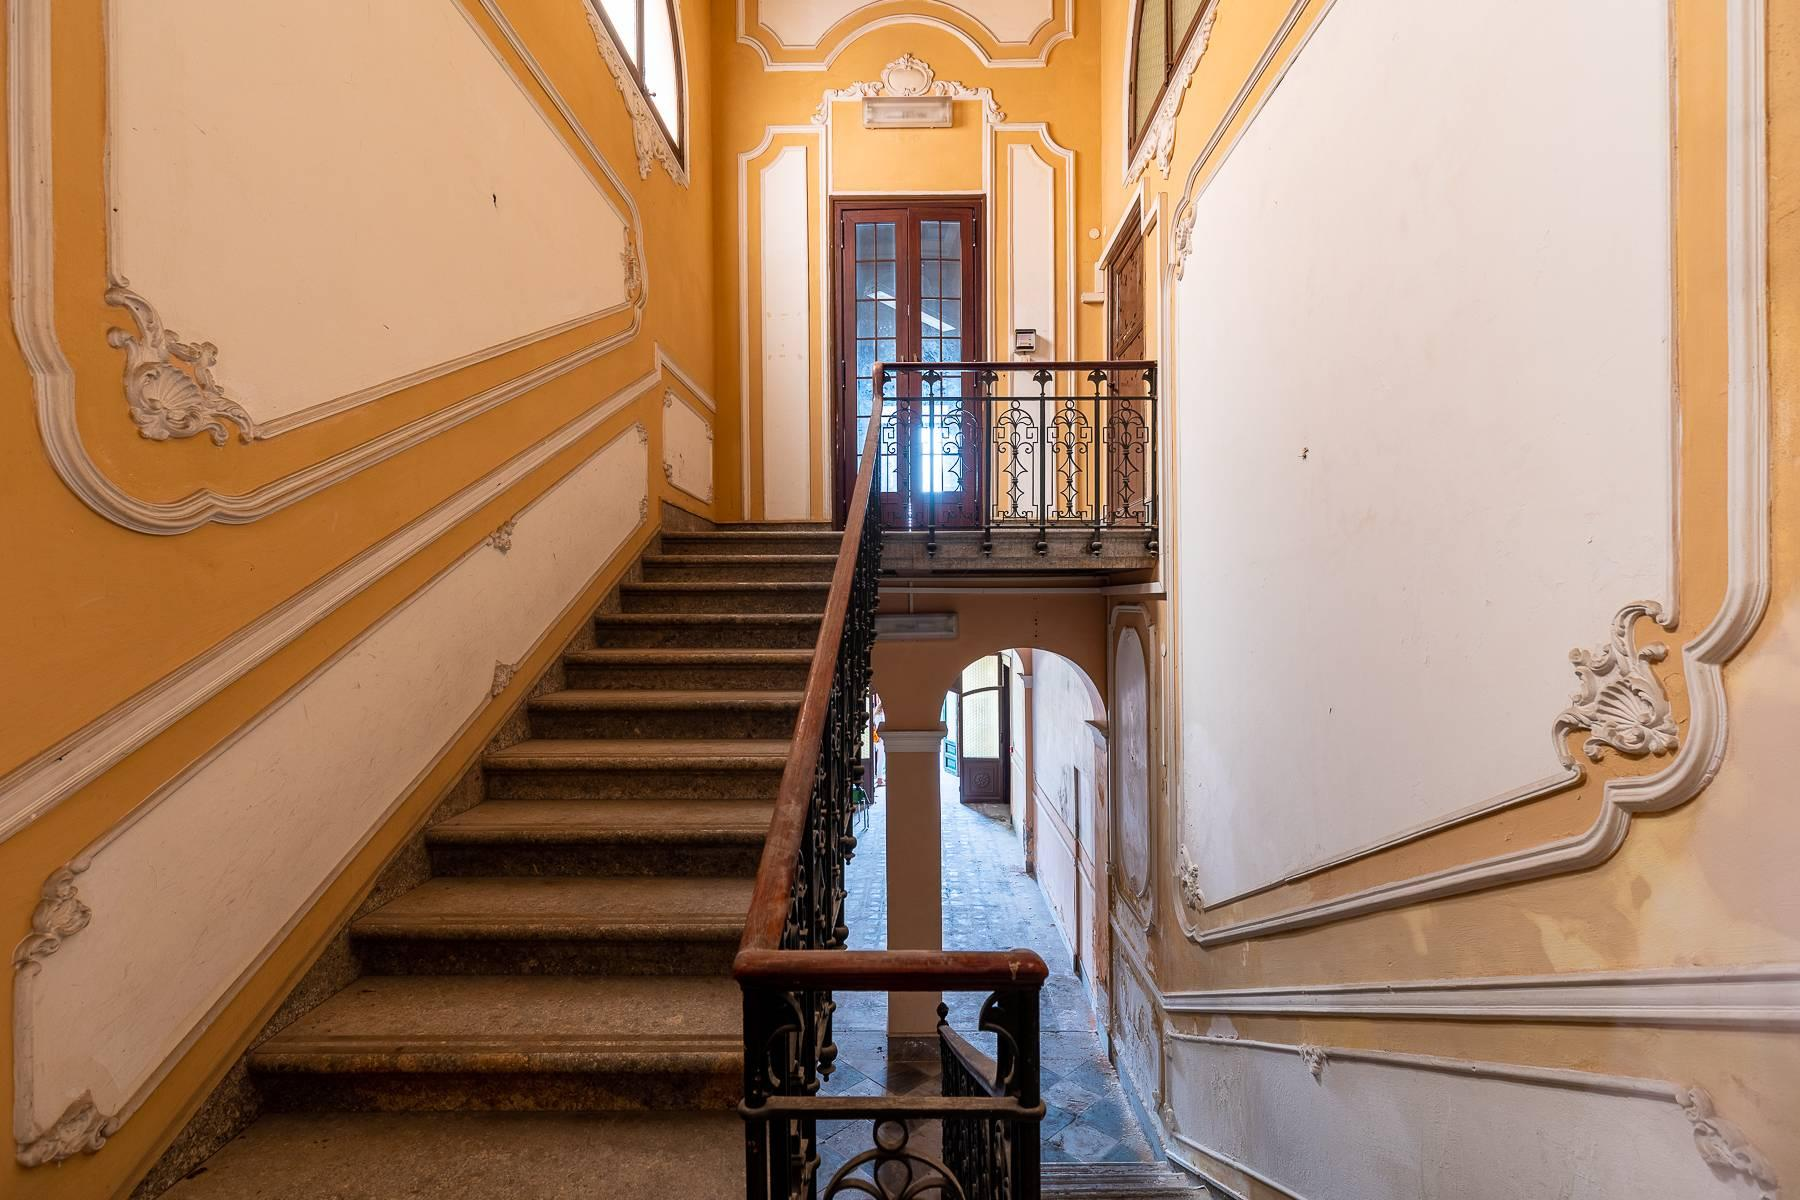 Liberty style building in the historical center of Trapani - 5